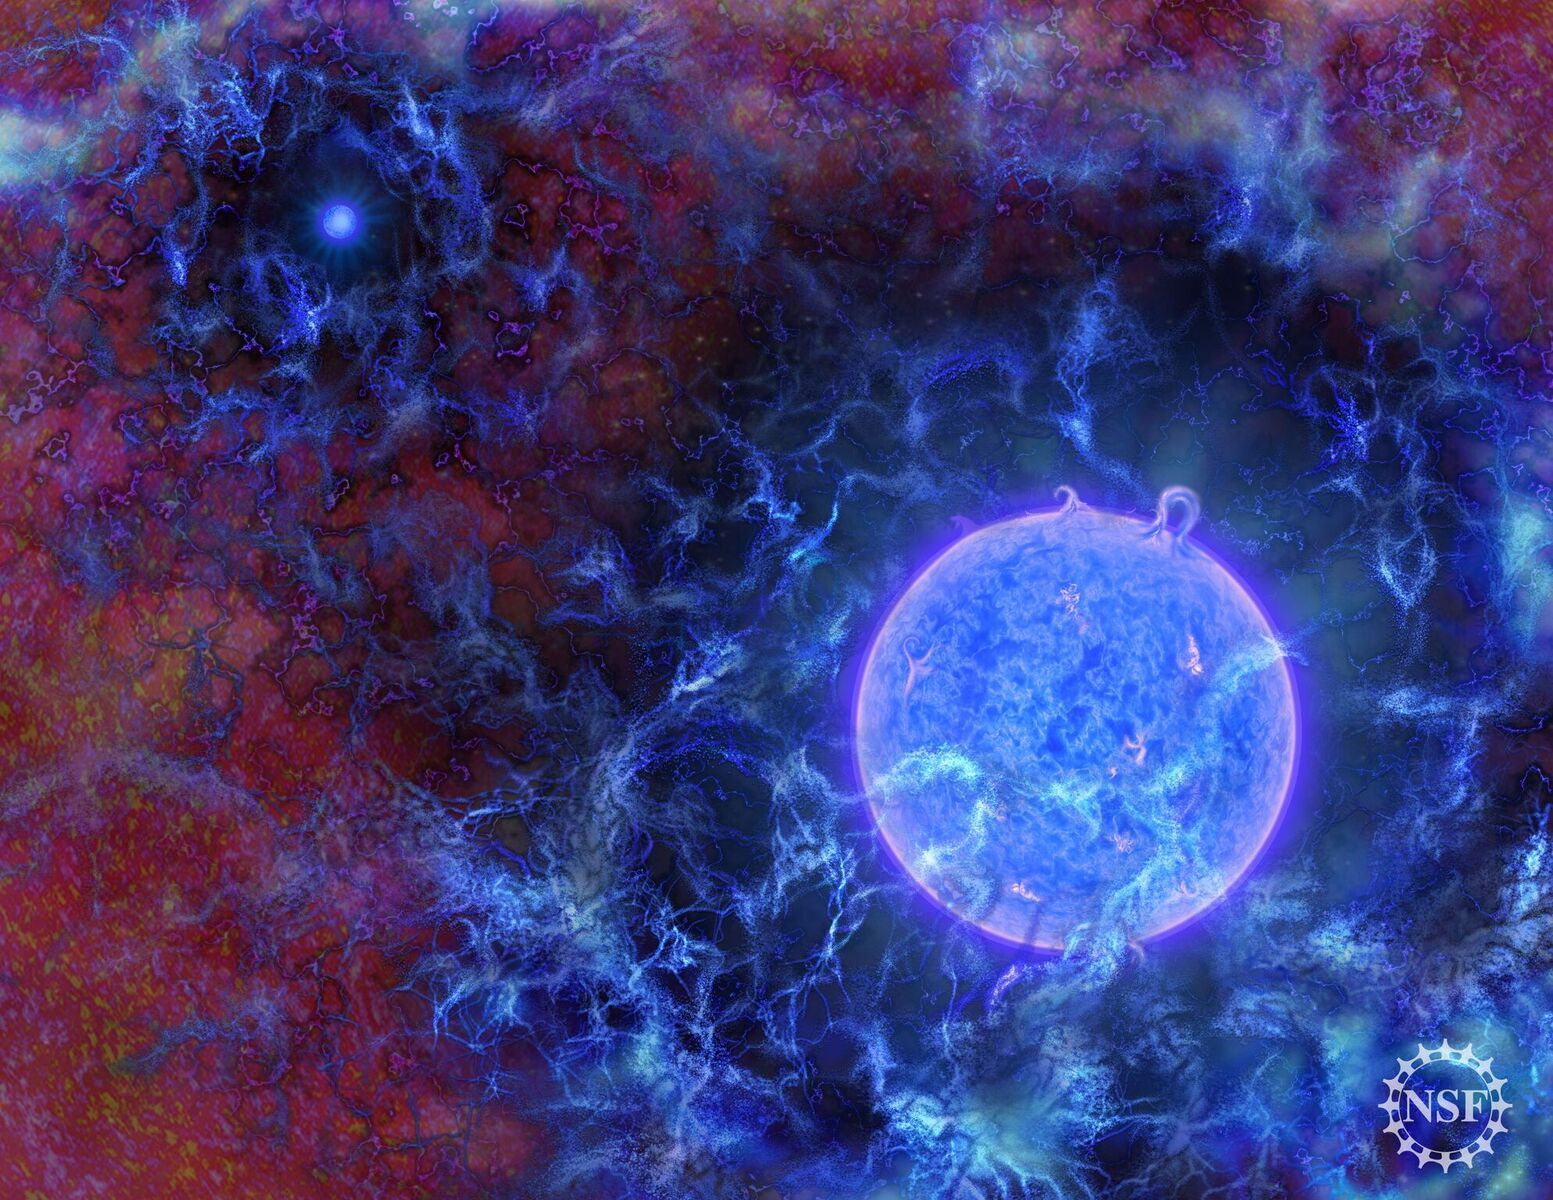 Artist's rendition of the first stars amid hydrogen gas